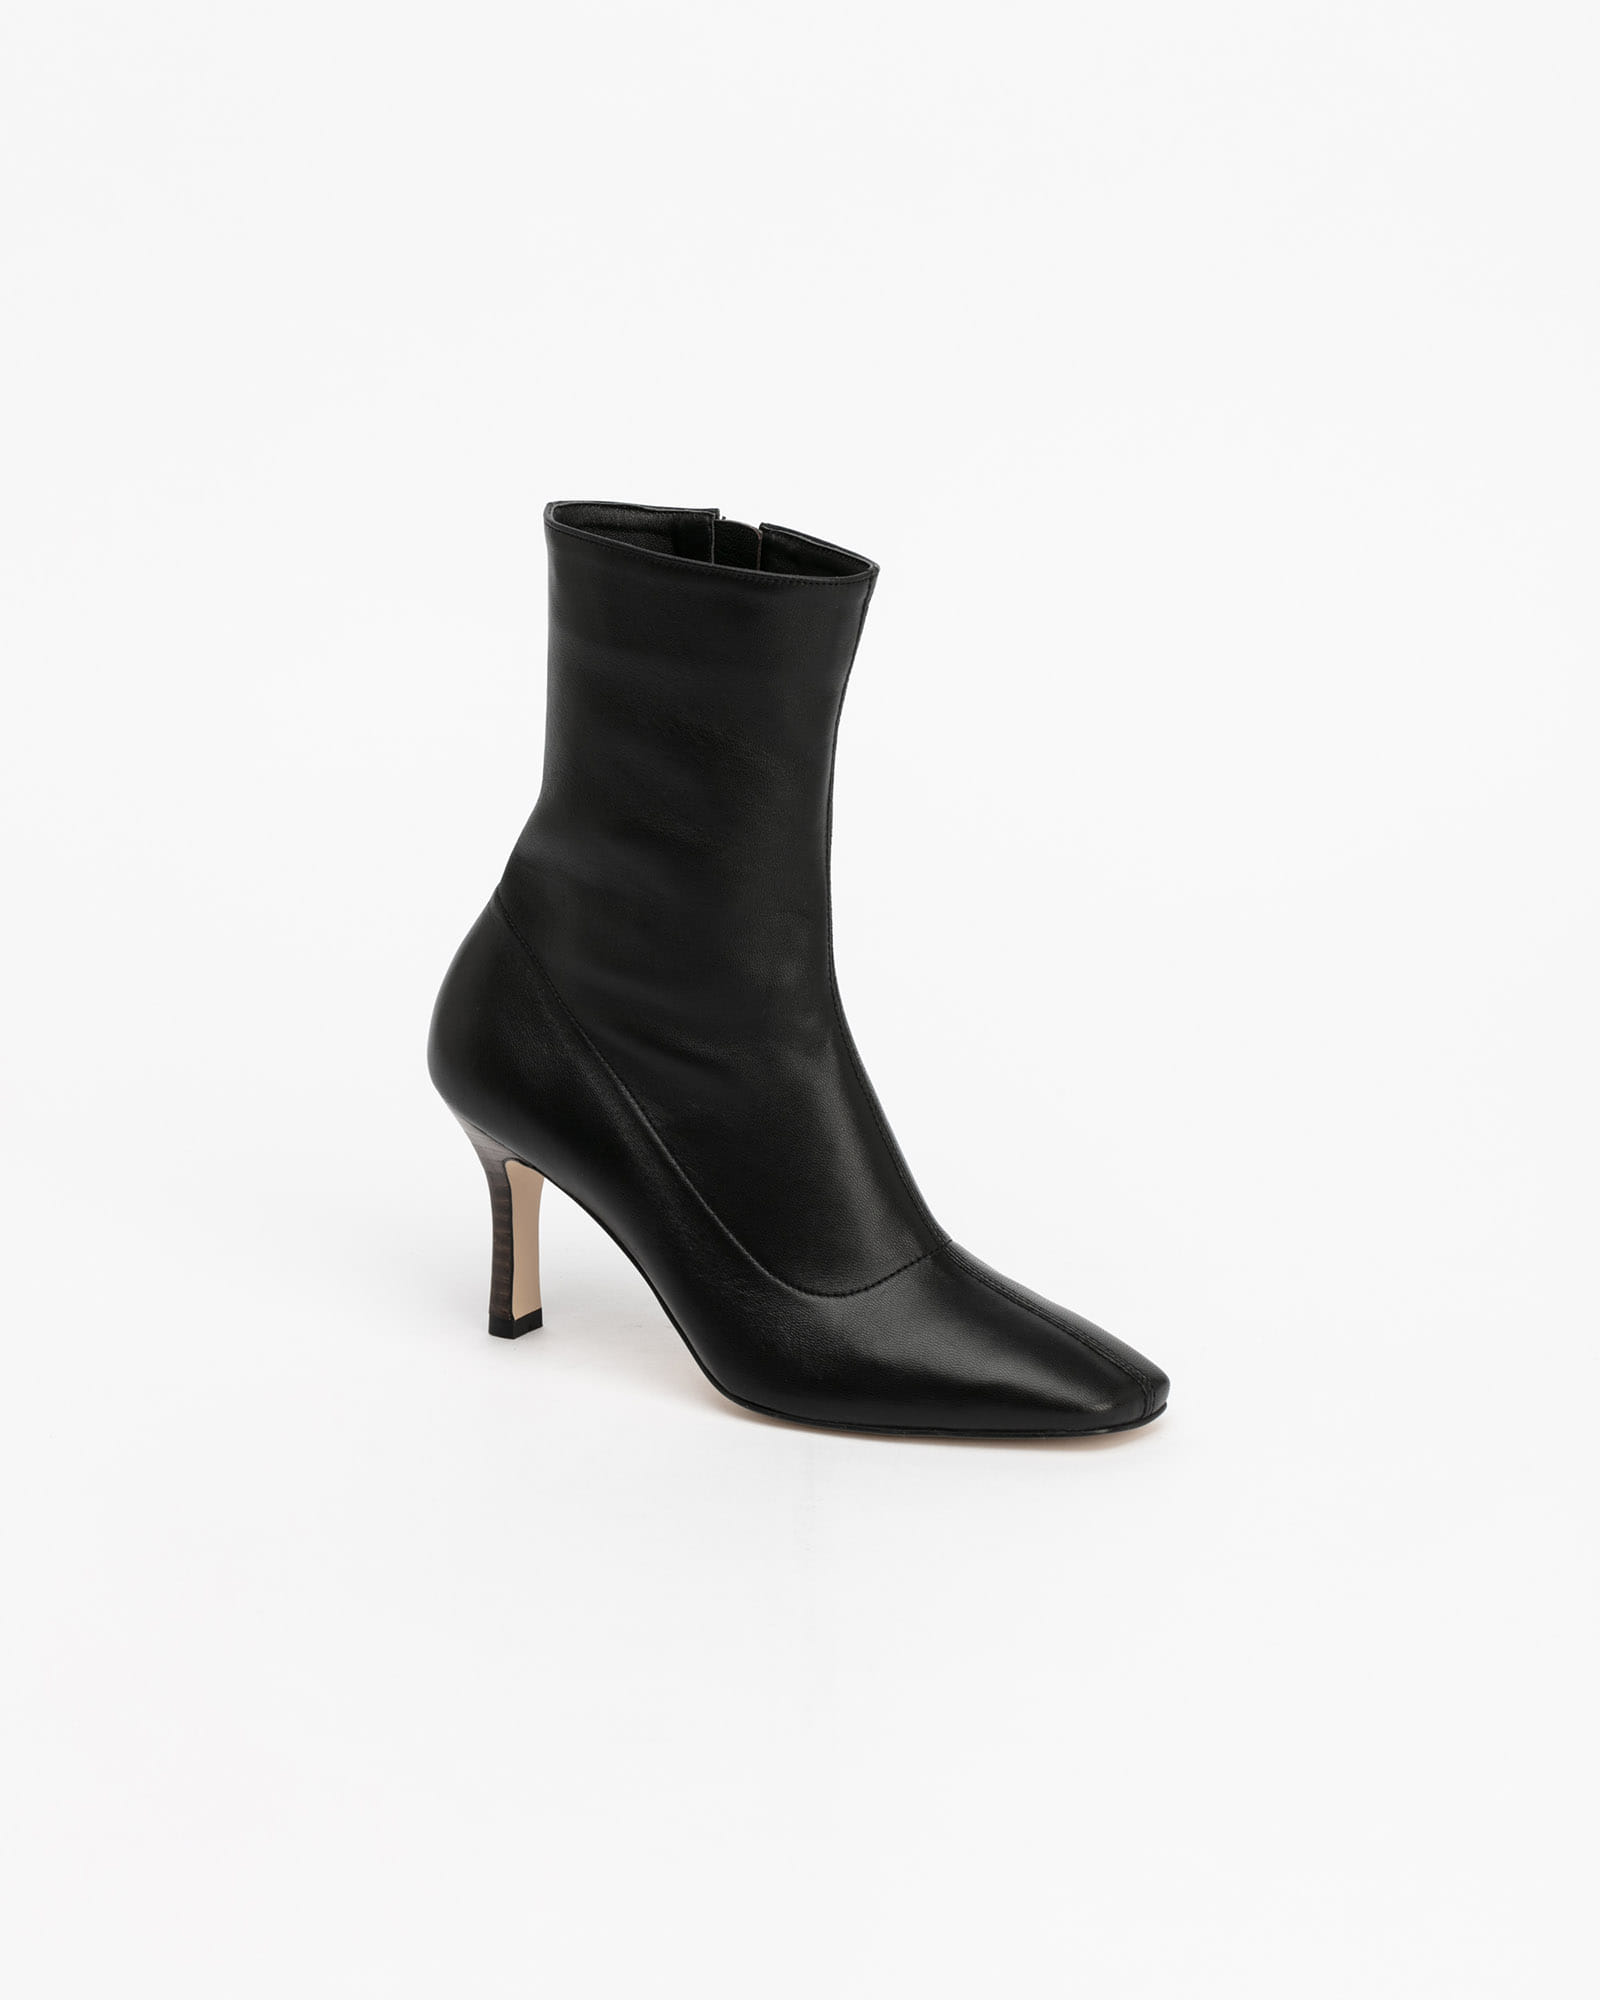 Bysshe Soft Boots in Black